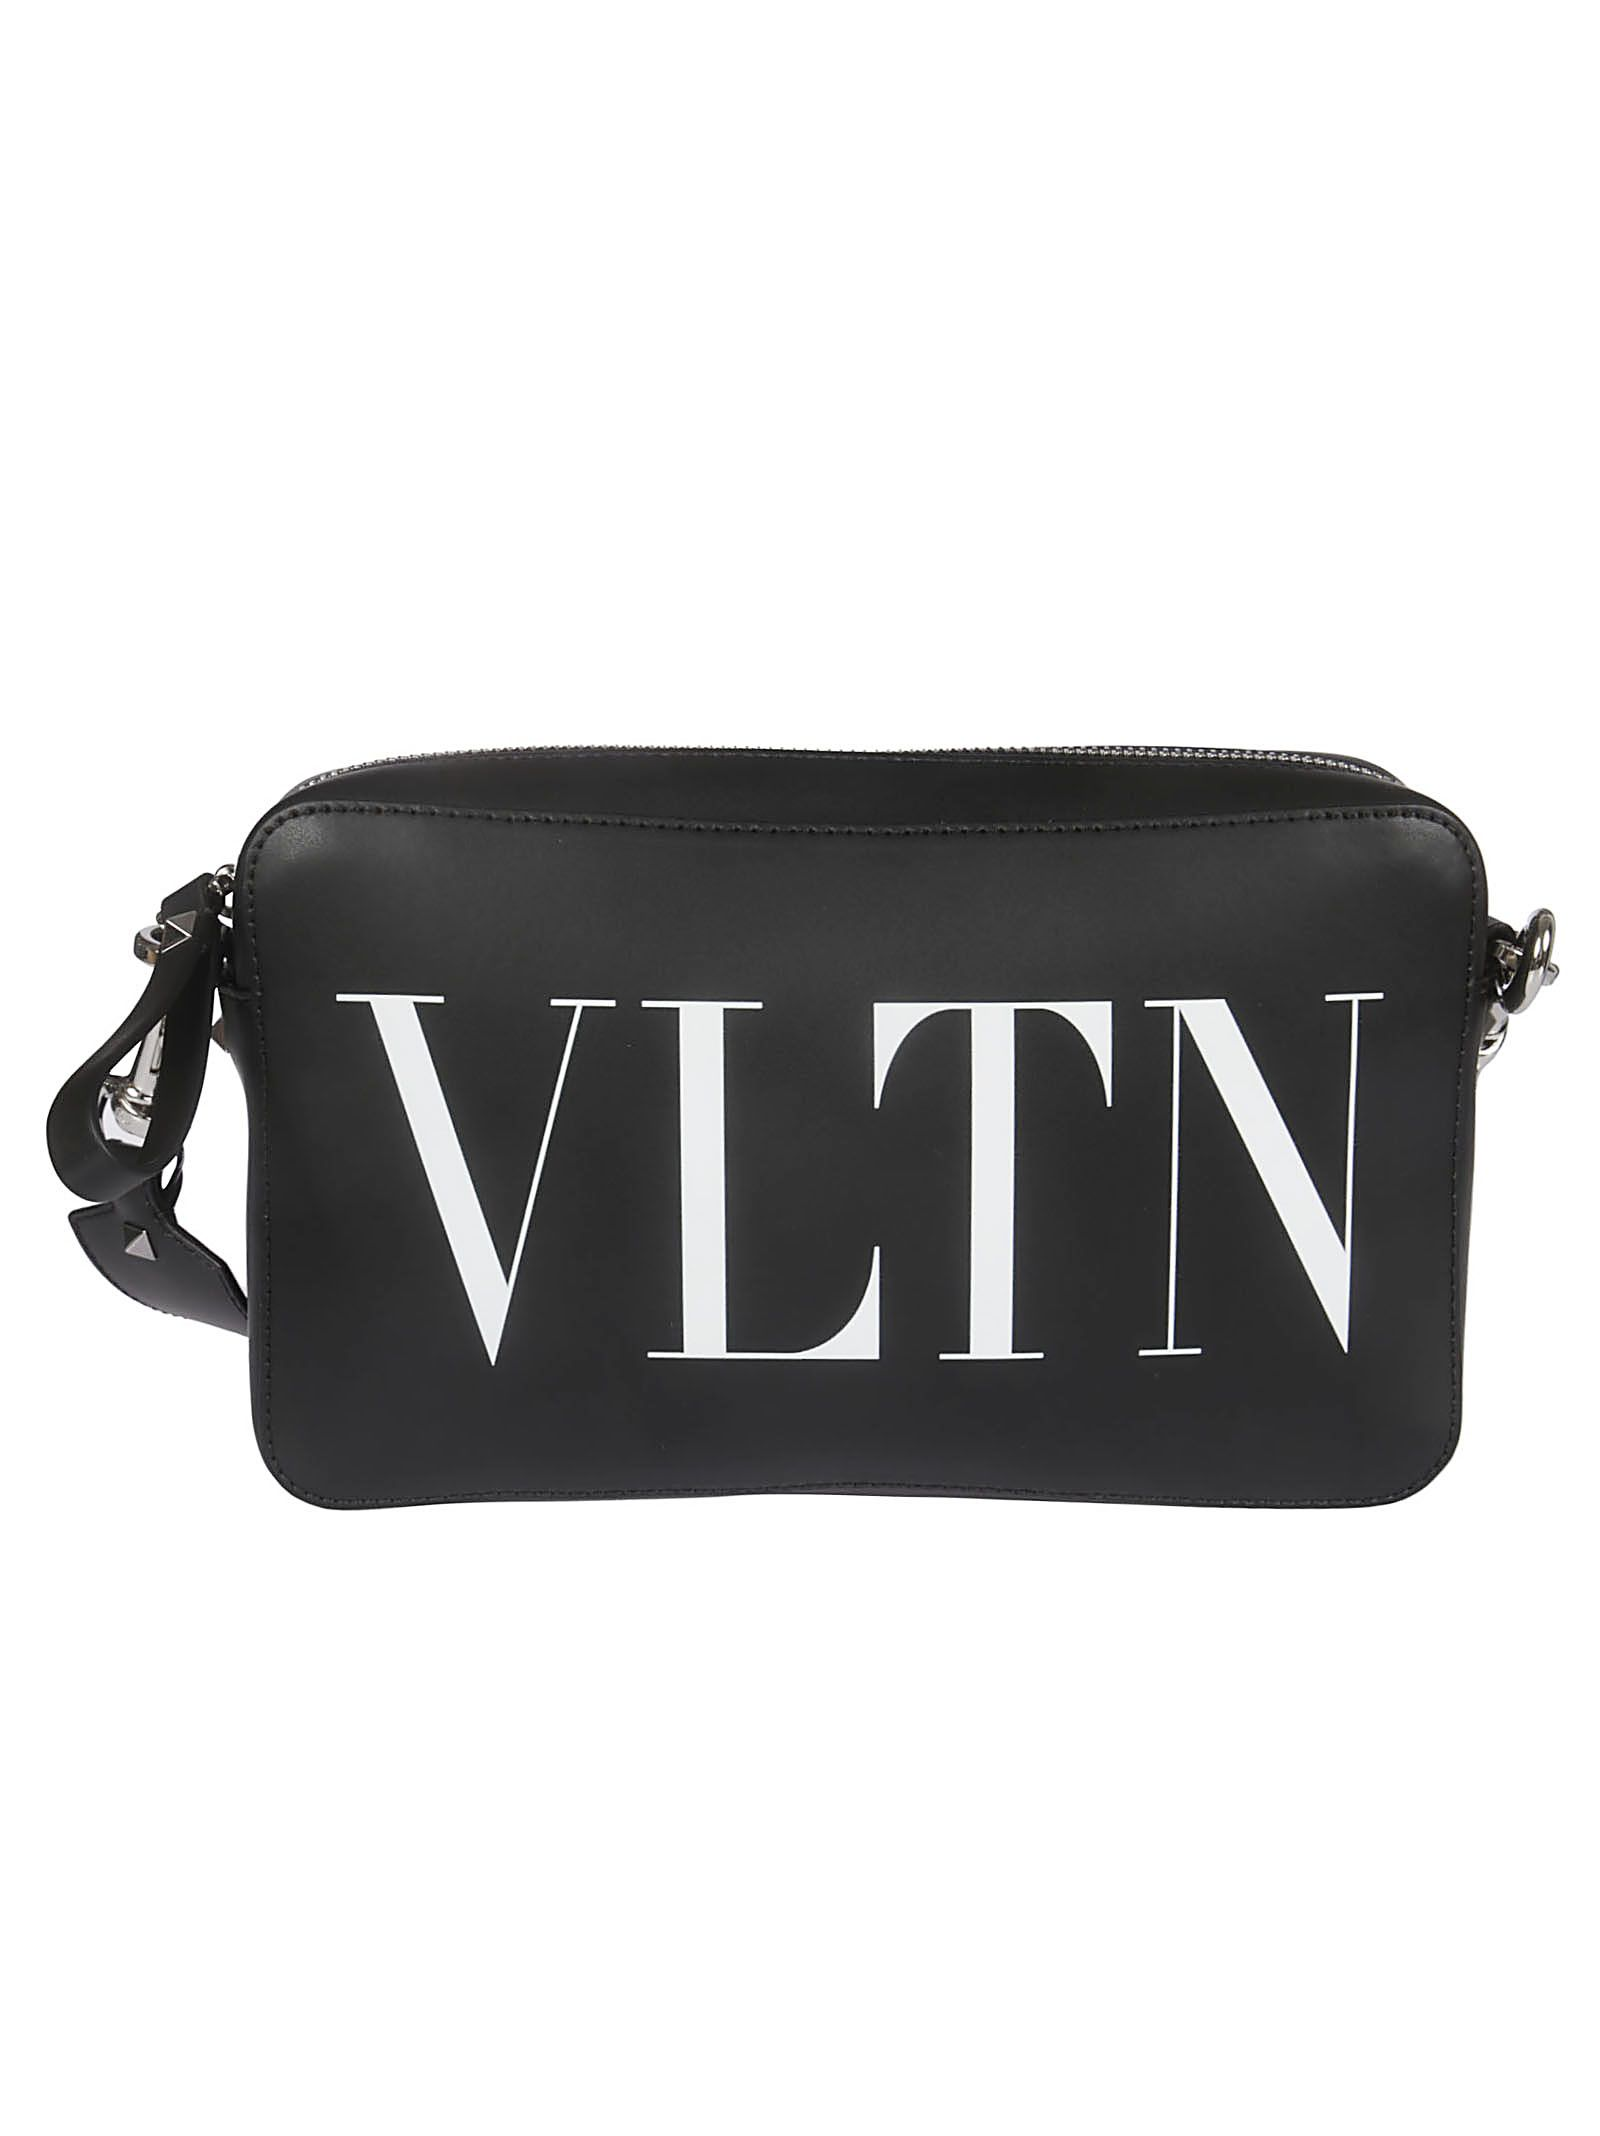 Valentino Vltn Shoulder Bag